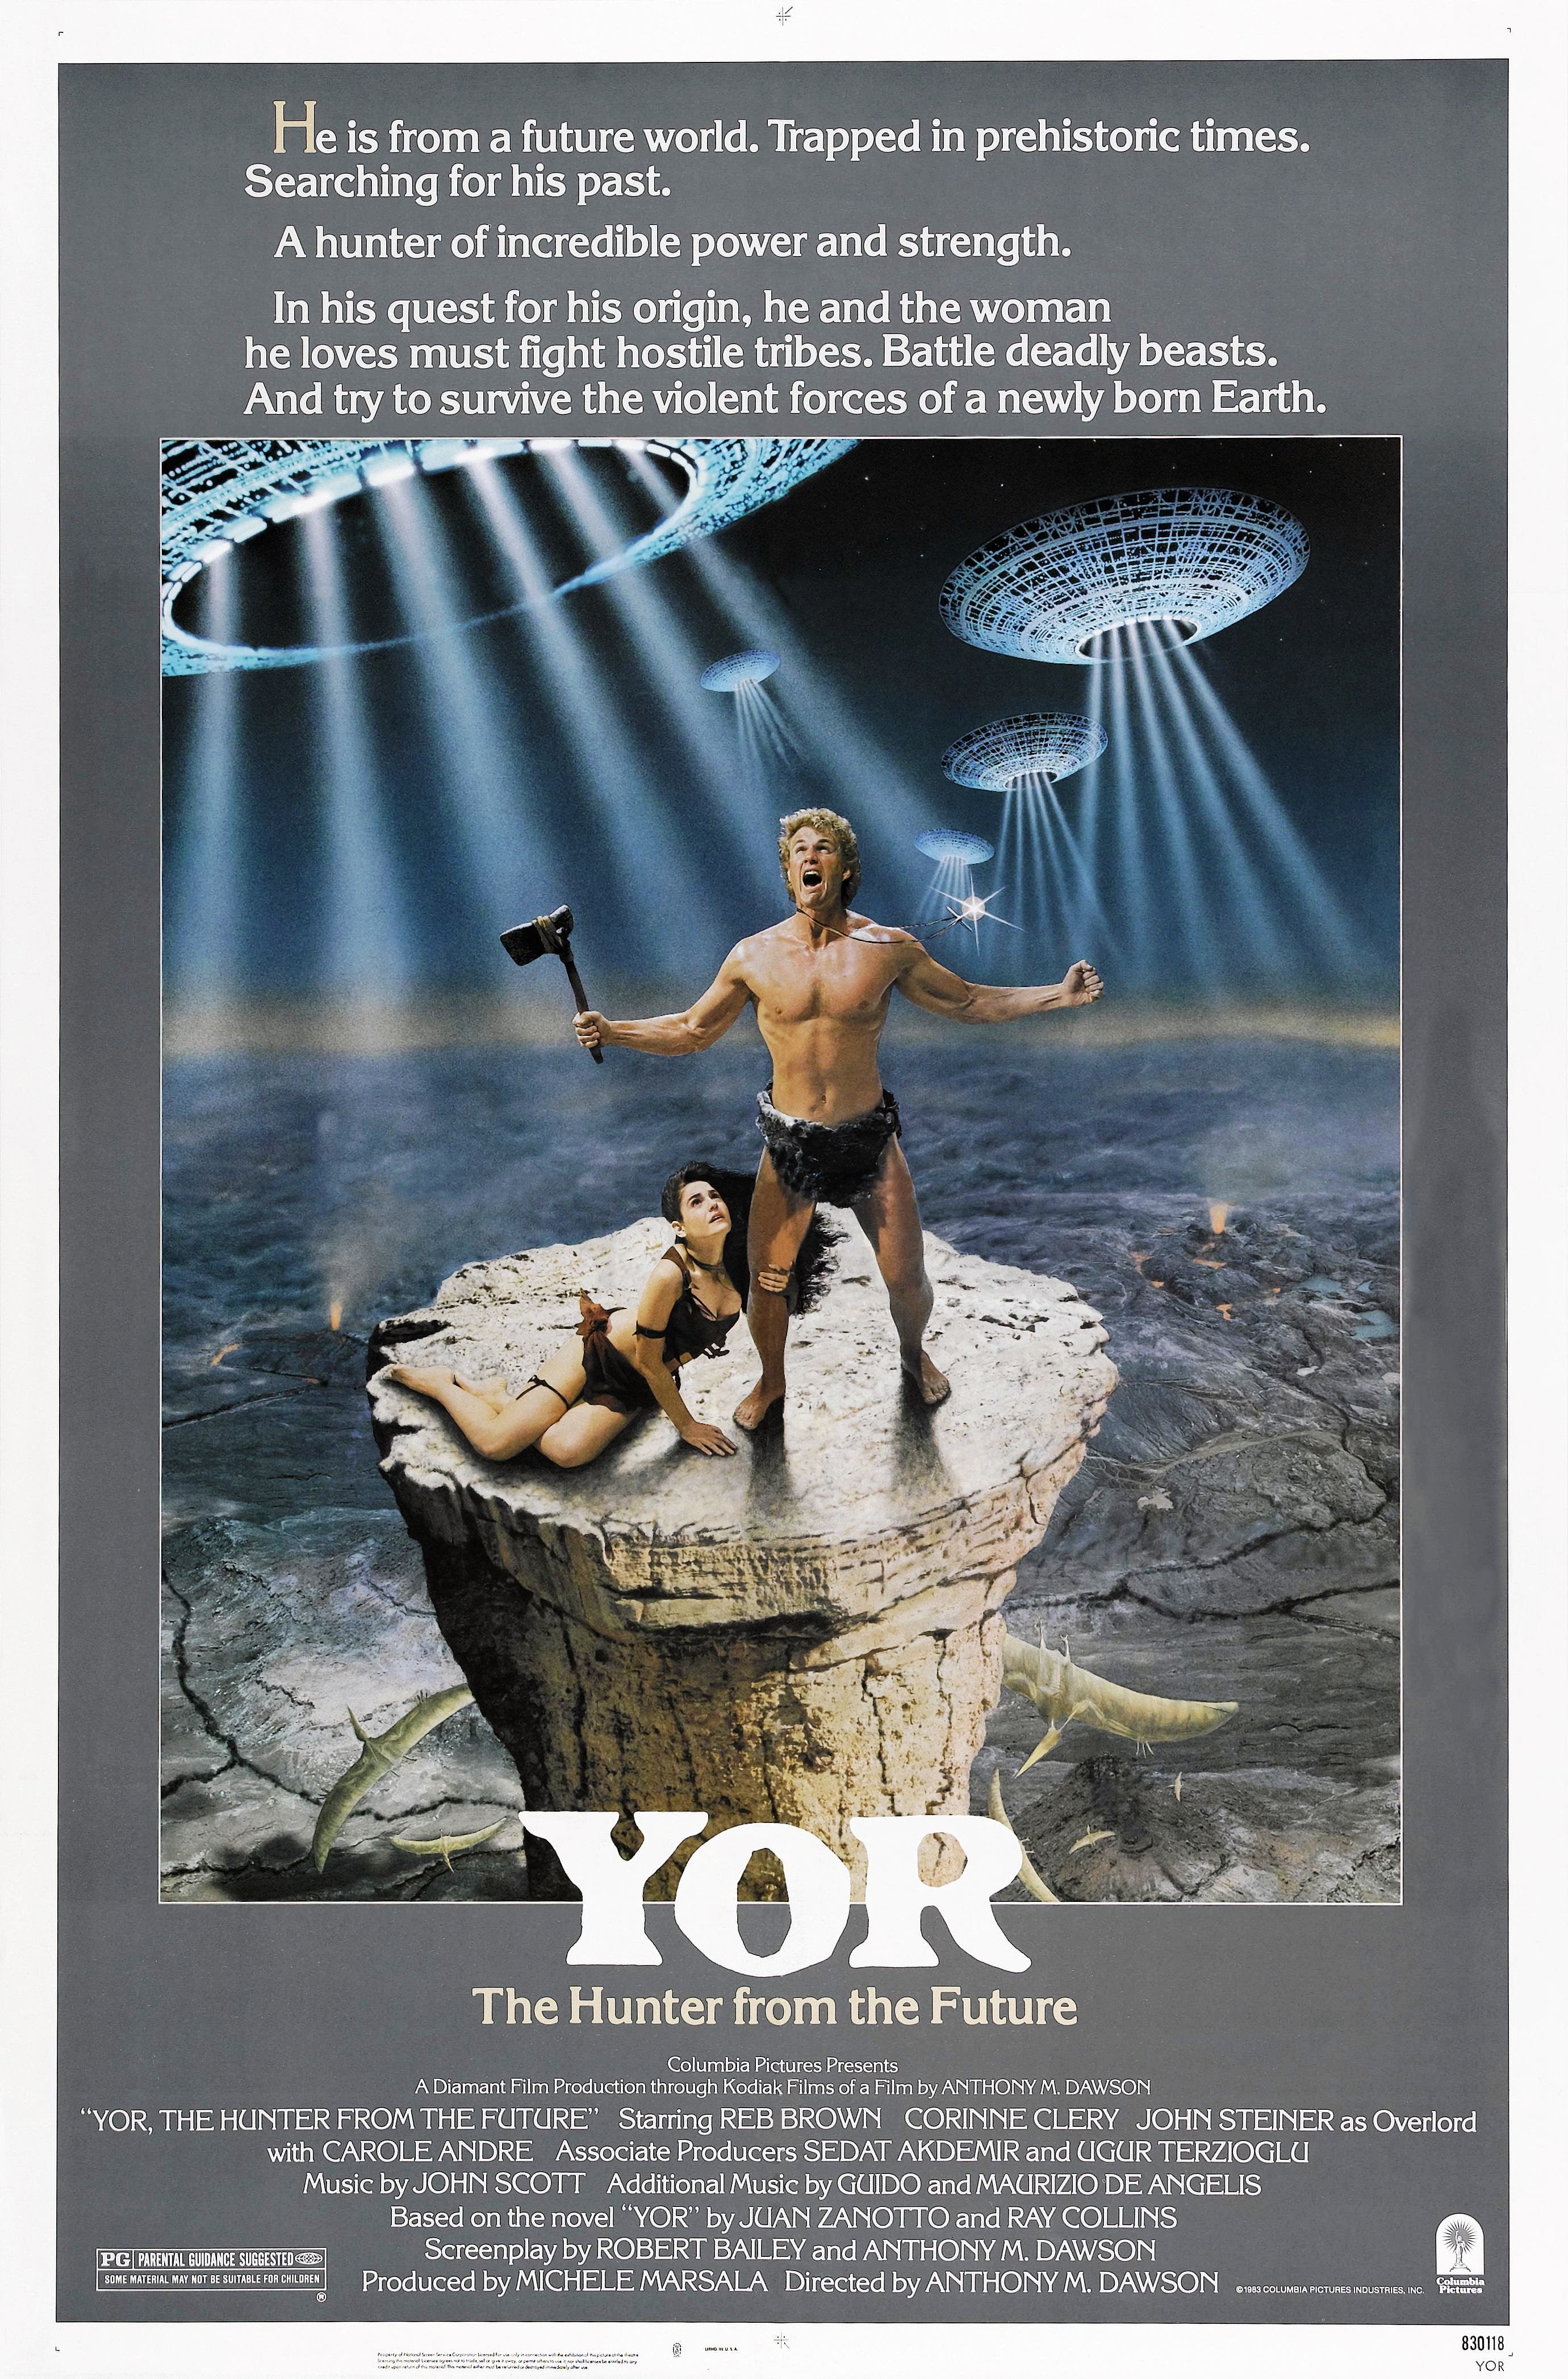 Yor, the Hunter from the Future movie